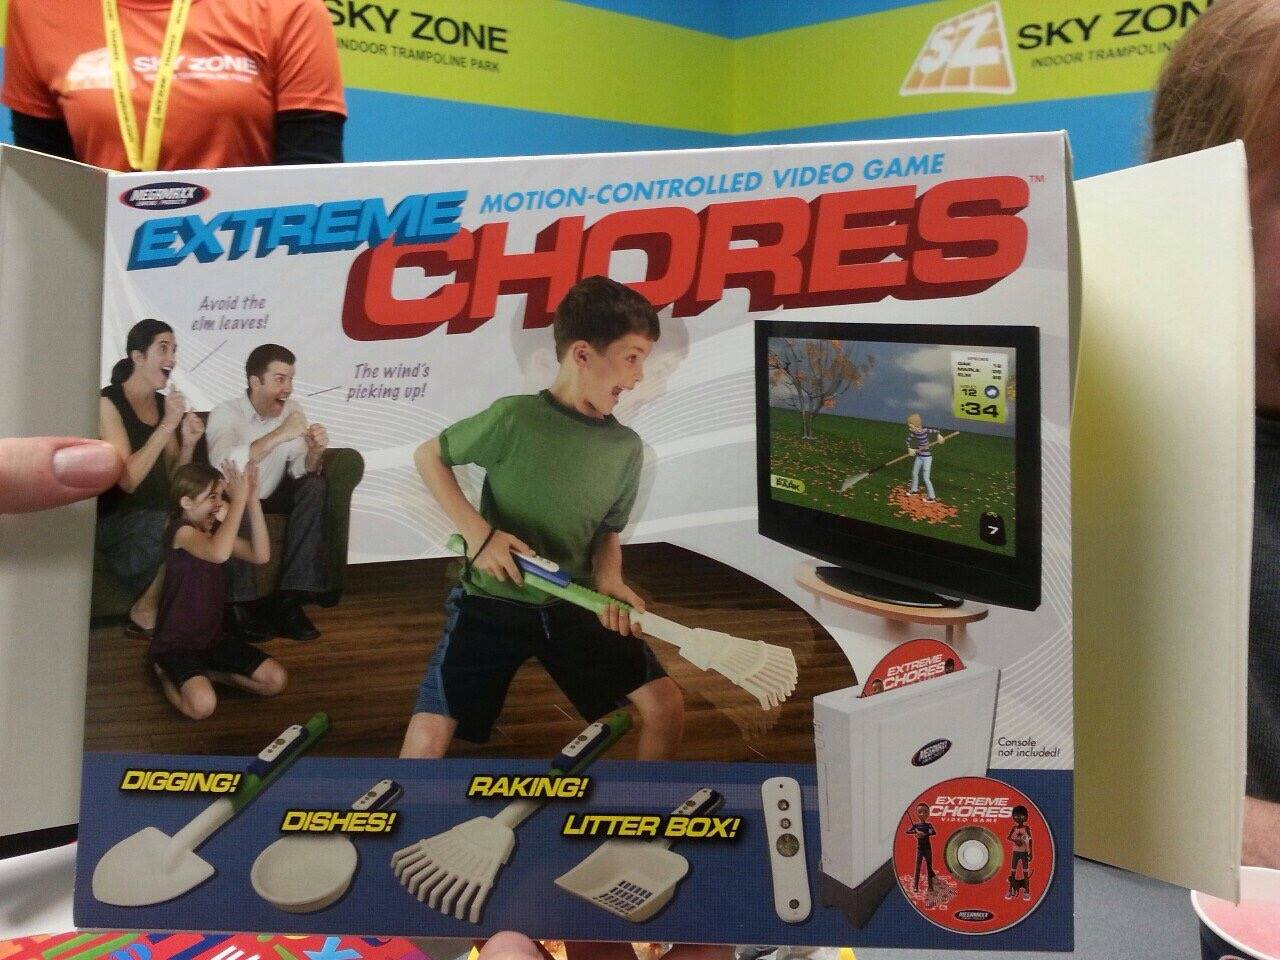 chores video game, worst game ever